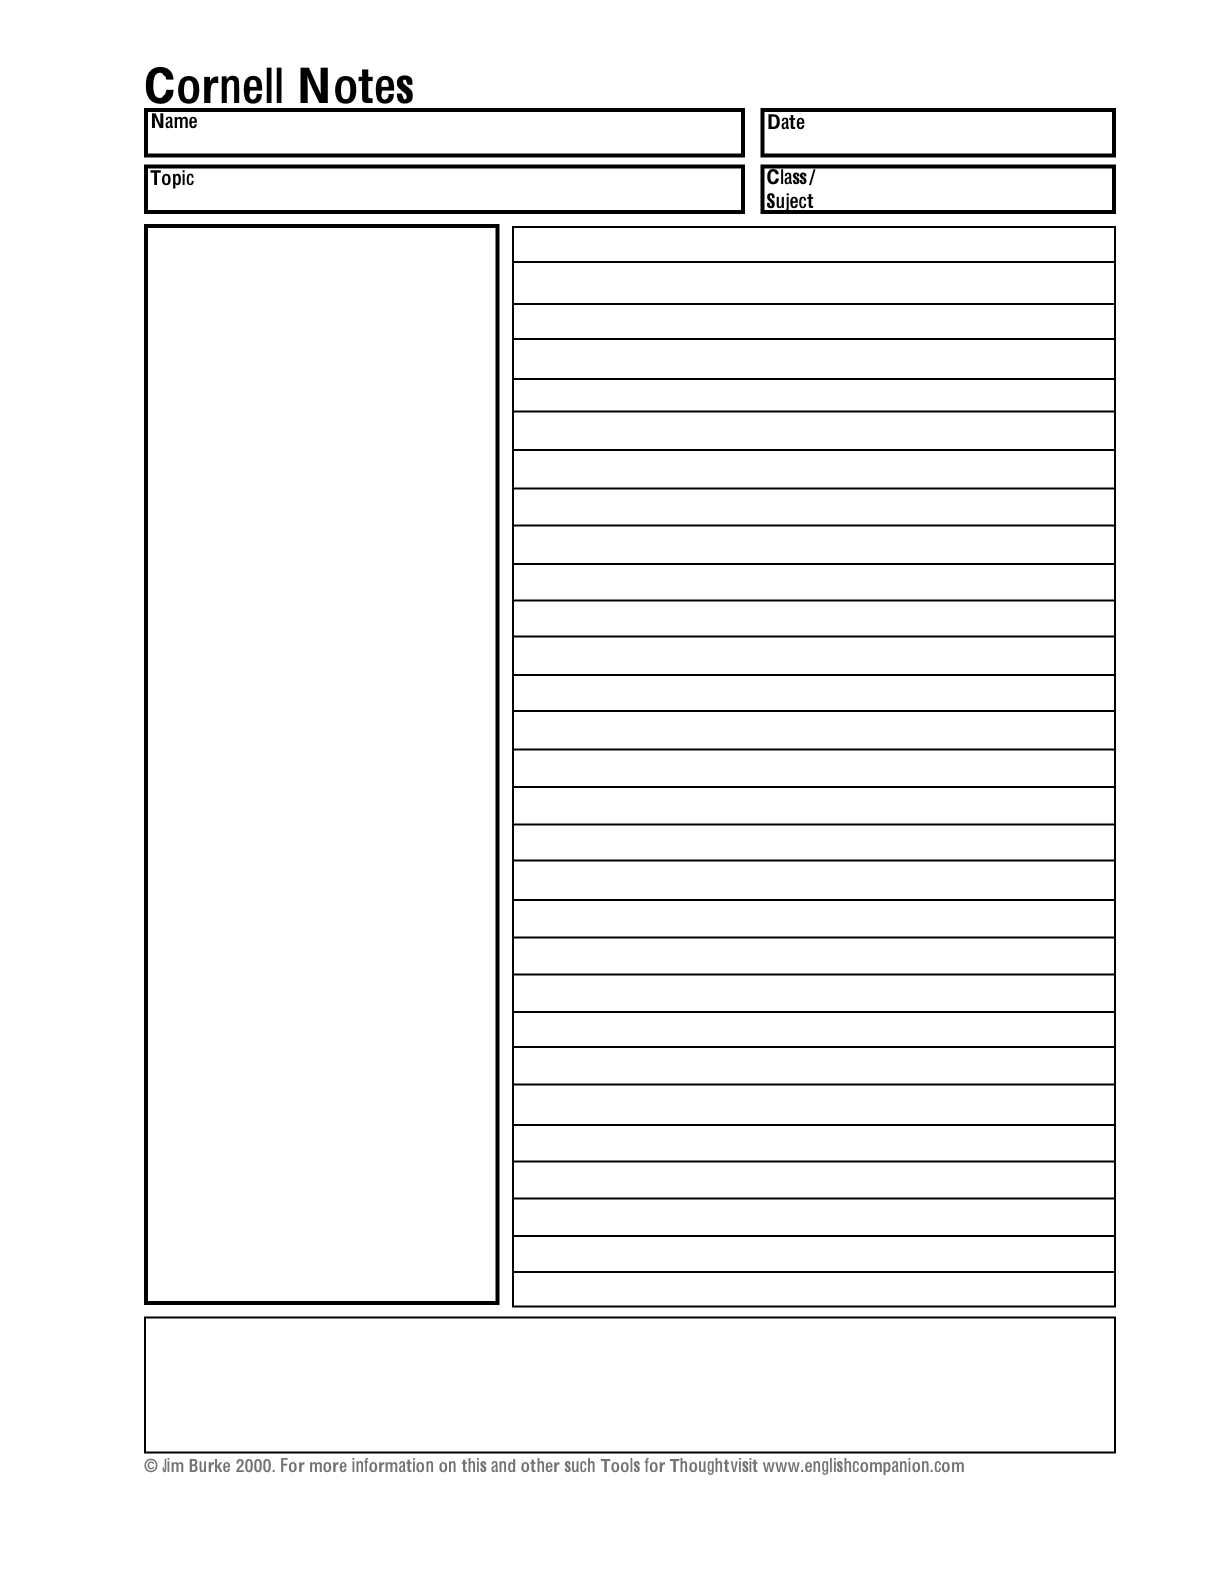 Cornell Notes Template Word Abq2Iv2D – وادي المشمش With Cornell Note Template Word